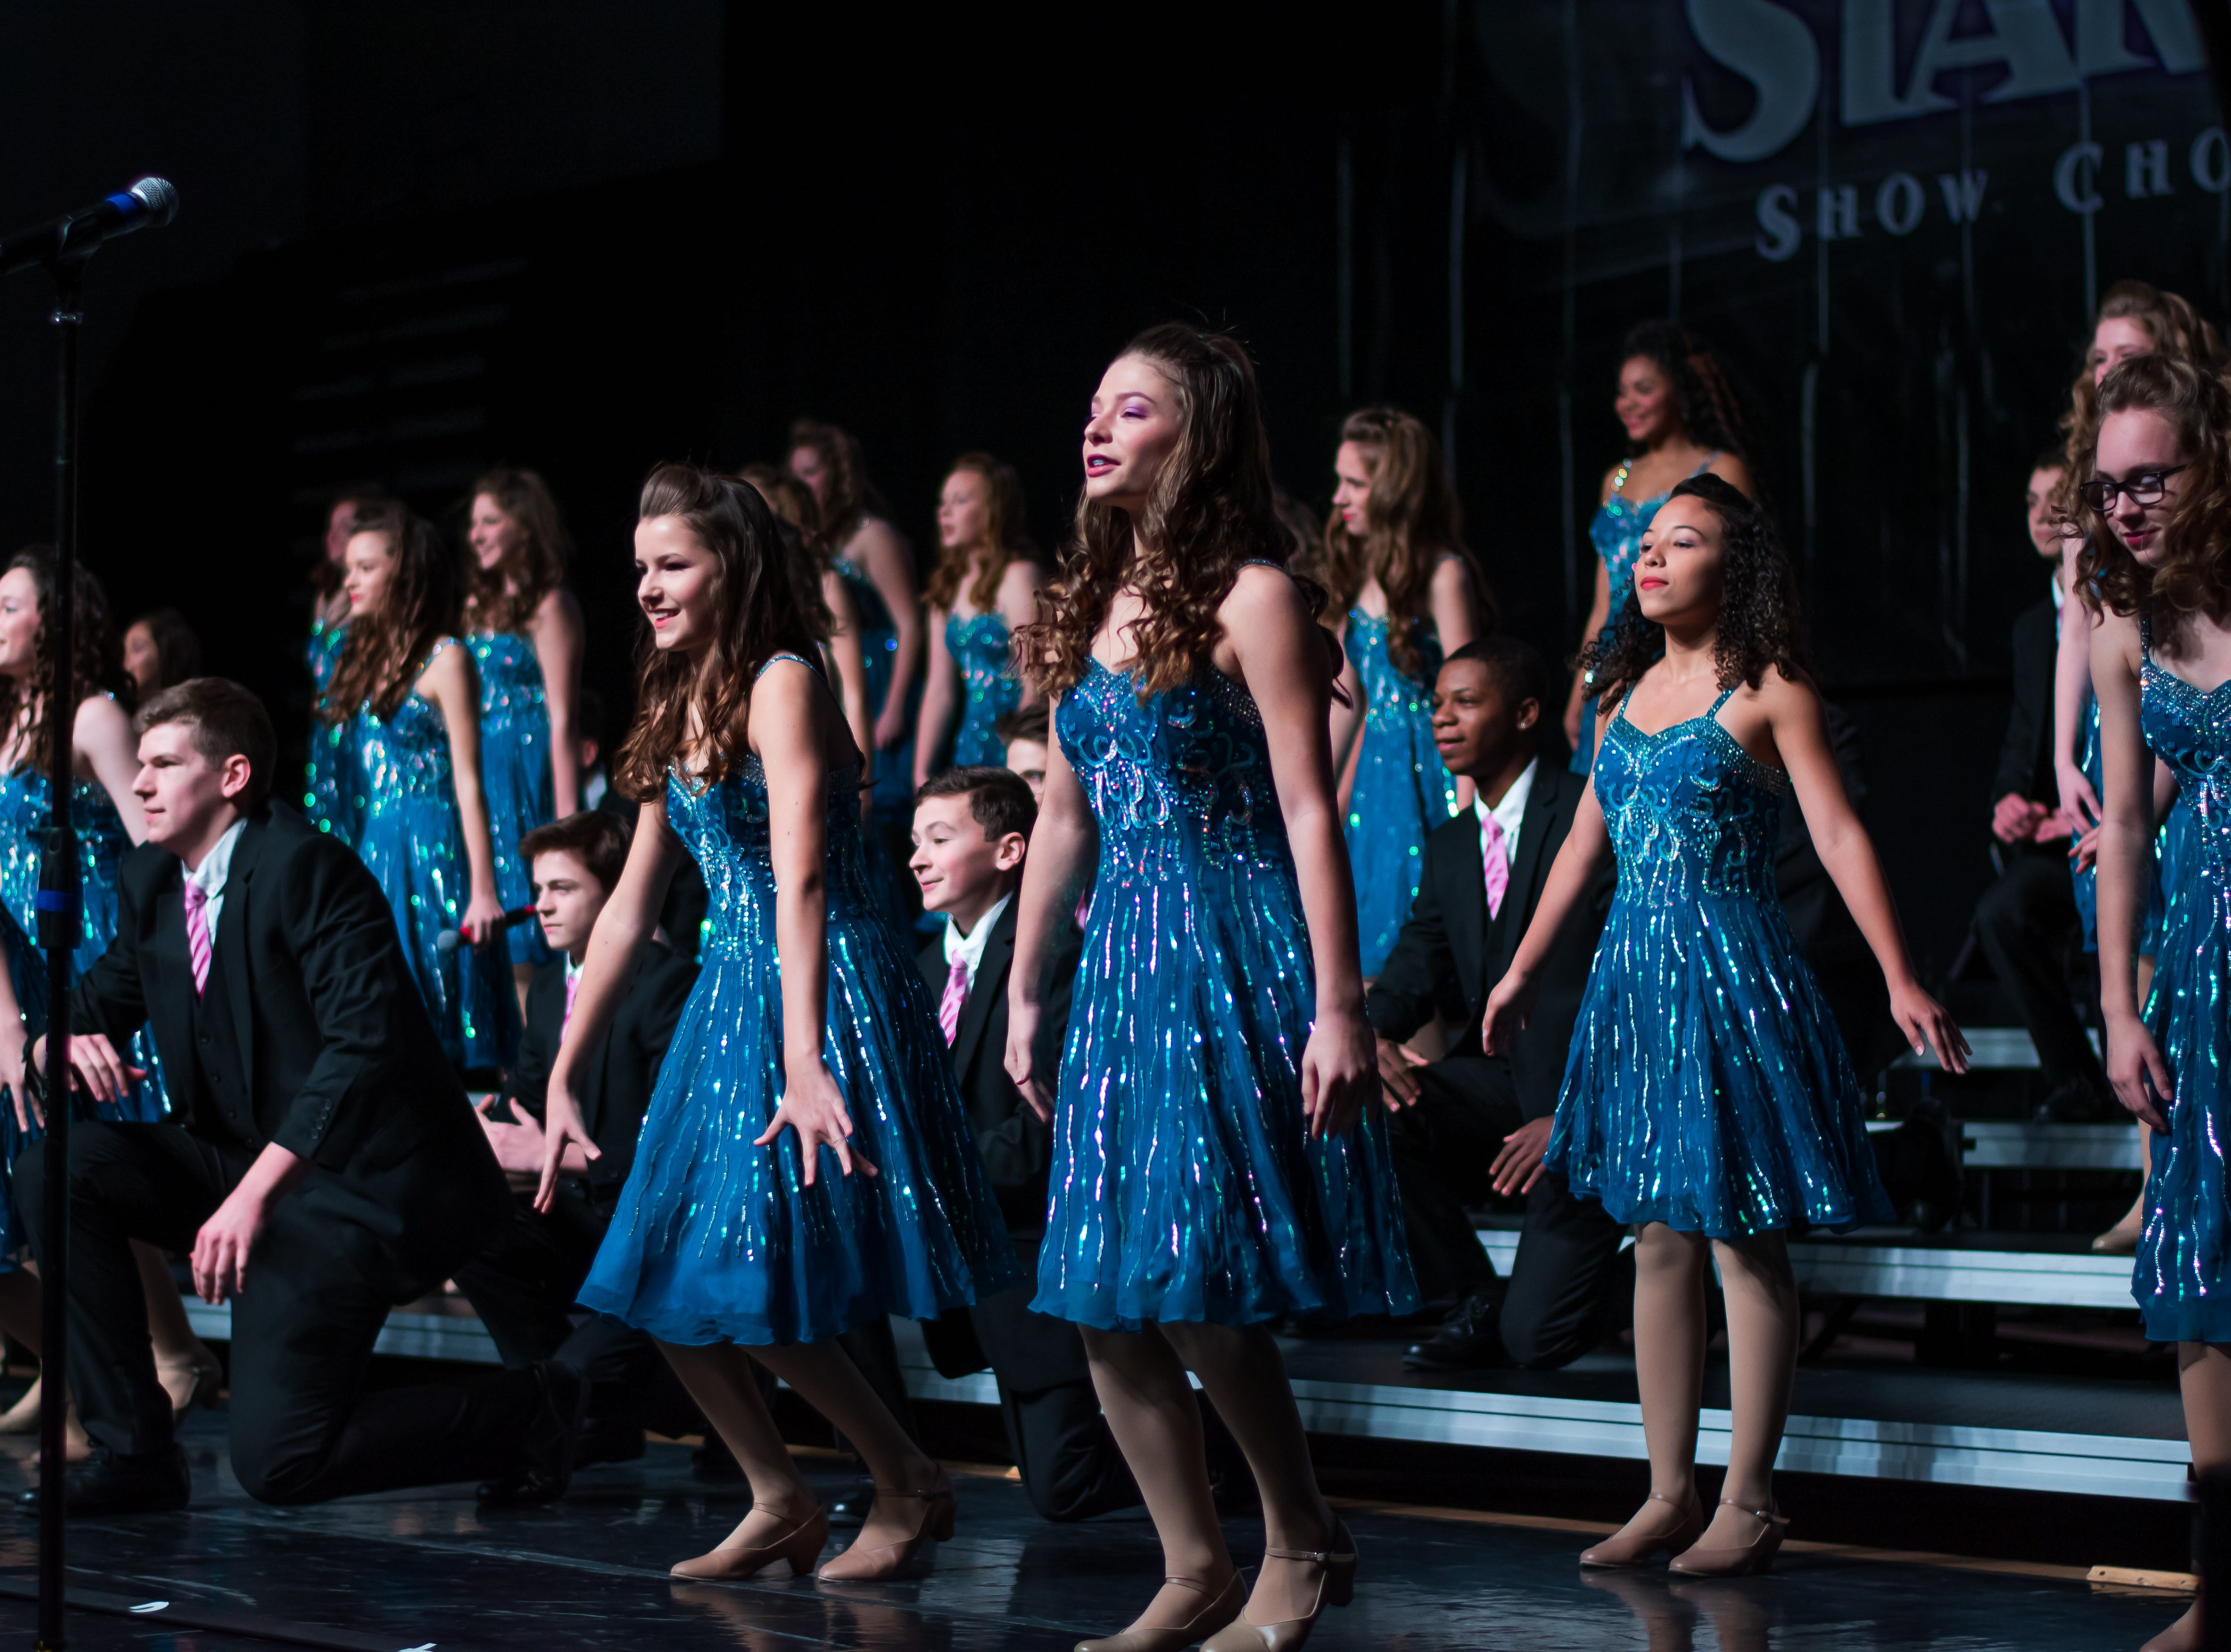 Waukee Timberline show choir group Inferno performs on Saturday, Jan. 12, 2019 at the Waukee Star Struck Show Choir Invitational in the Waukee High School Field House.